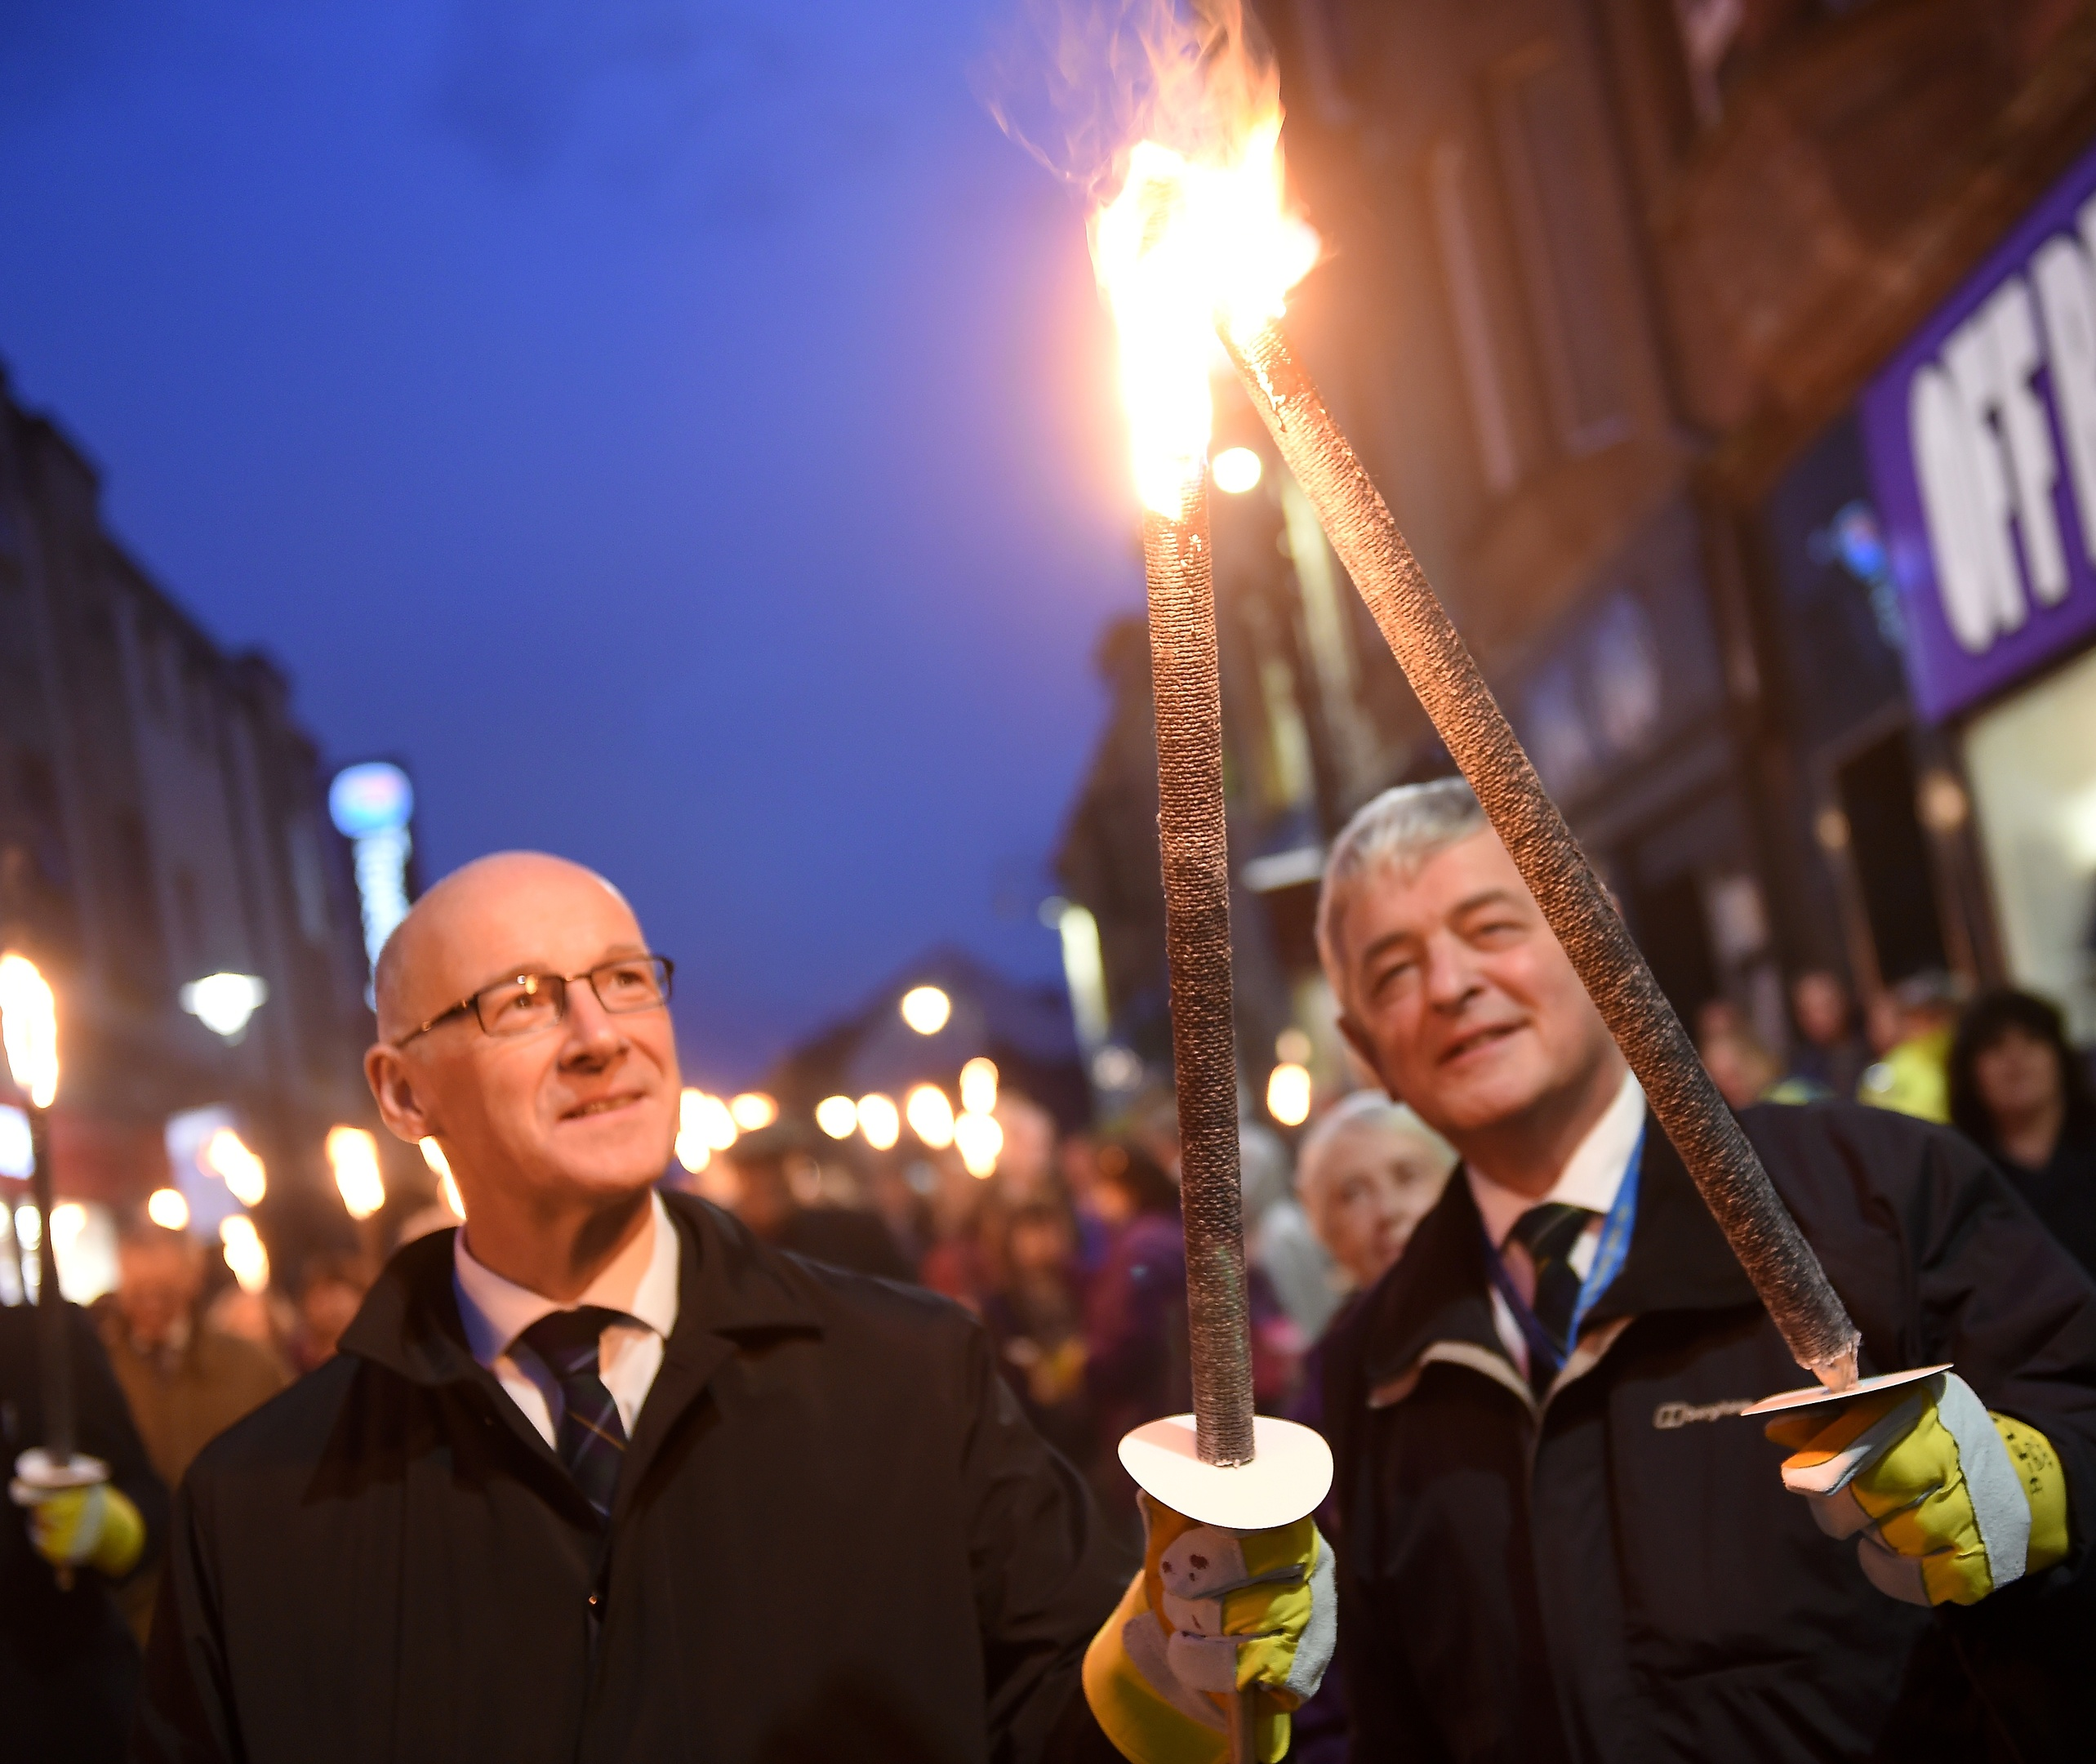 Deputy First Minister John Swinney and President Alan Campbell at the torch procession. Pic by Sandy McCook